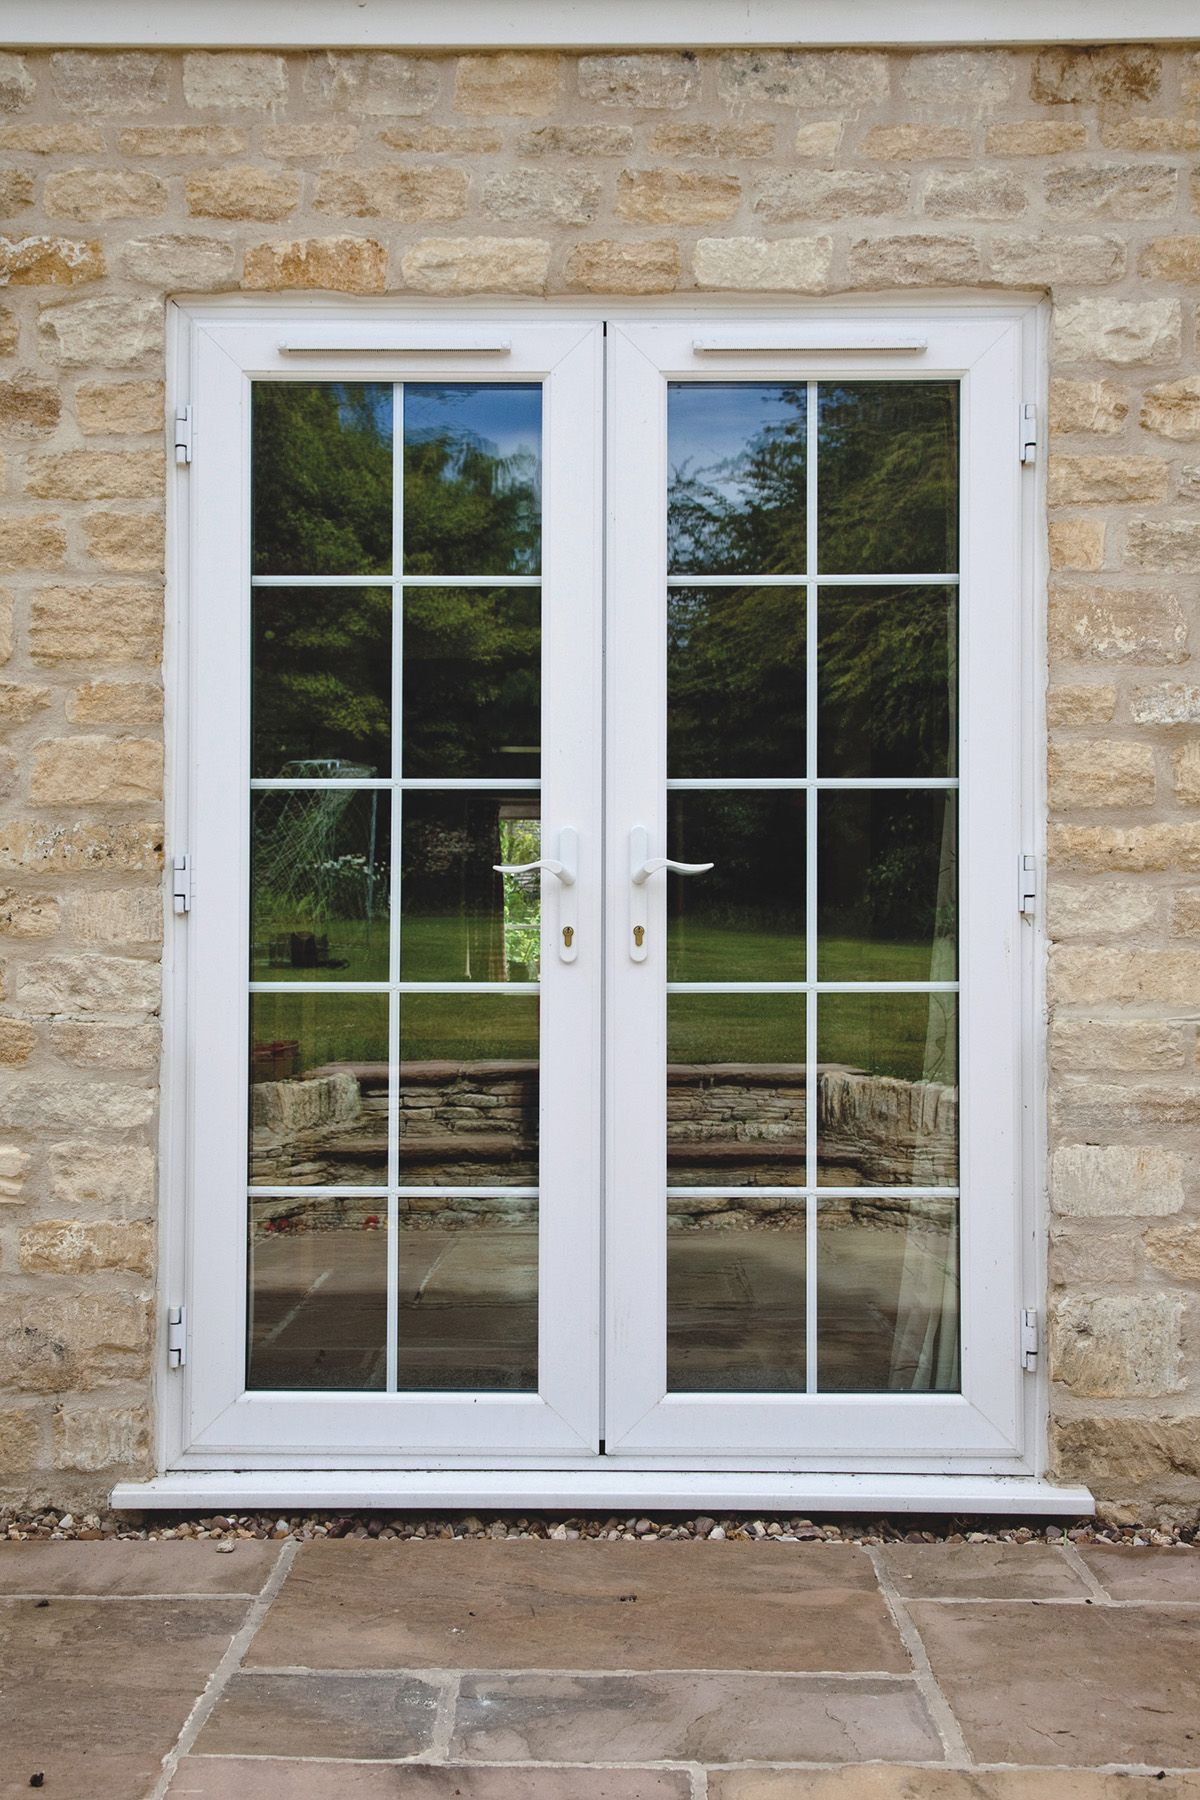 Duraflex Upvc Casement Windows From Gfd Homes To Suit Any Home From The Classic Styles To The More Modern We Can Window Design Upvc French Doors Upvc Windows